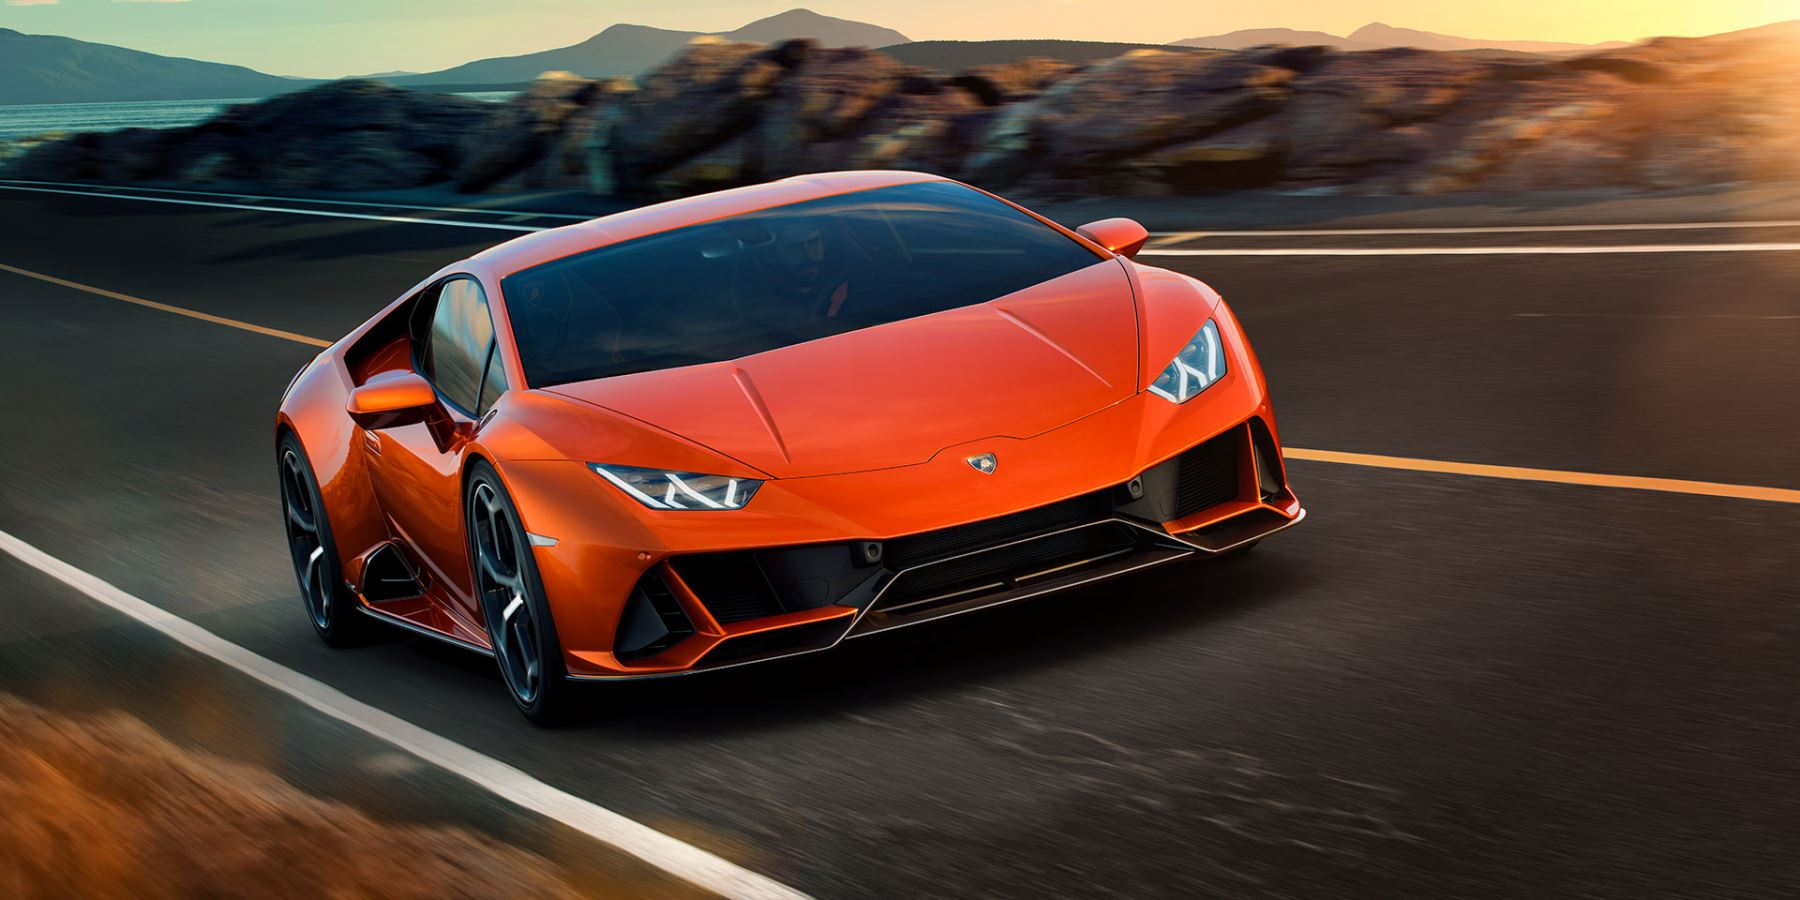 Lamborghini Huracan EVO - Every Day Amplified image 1